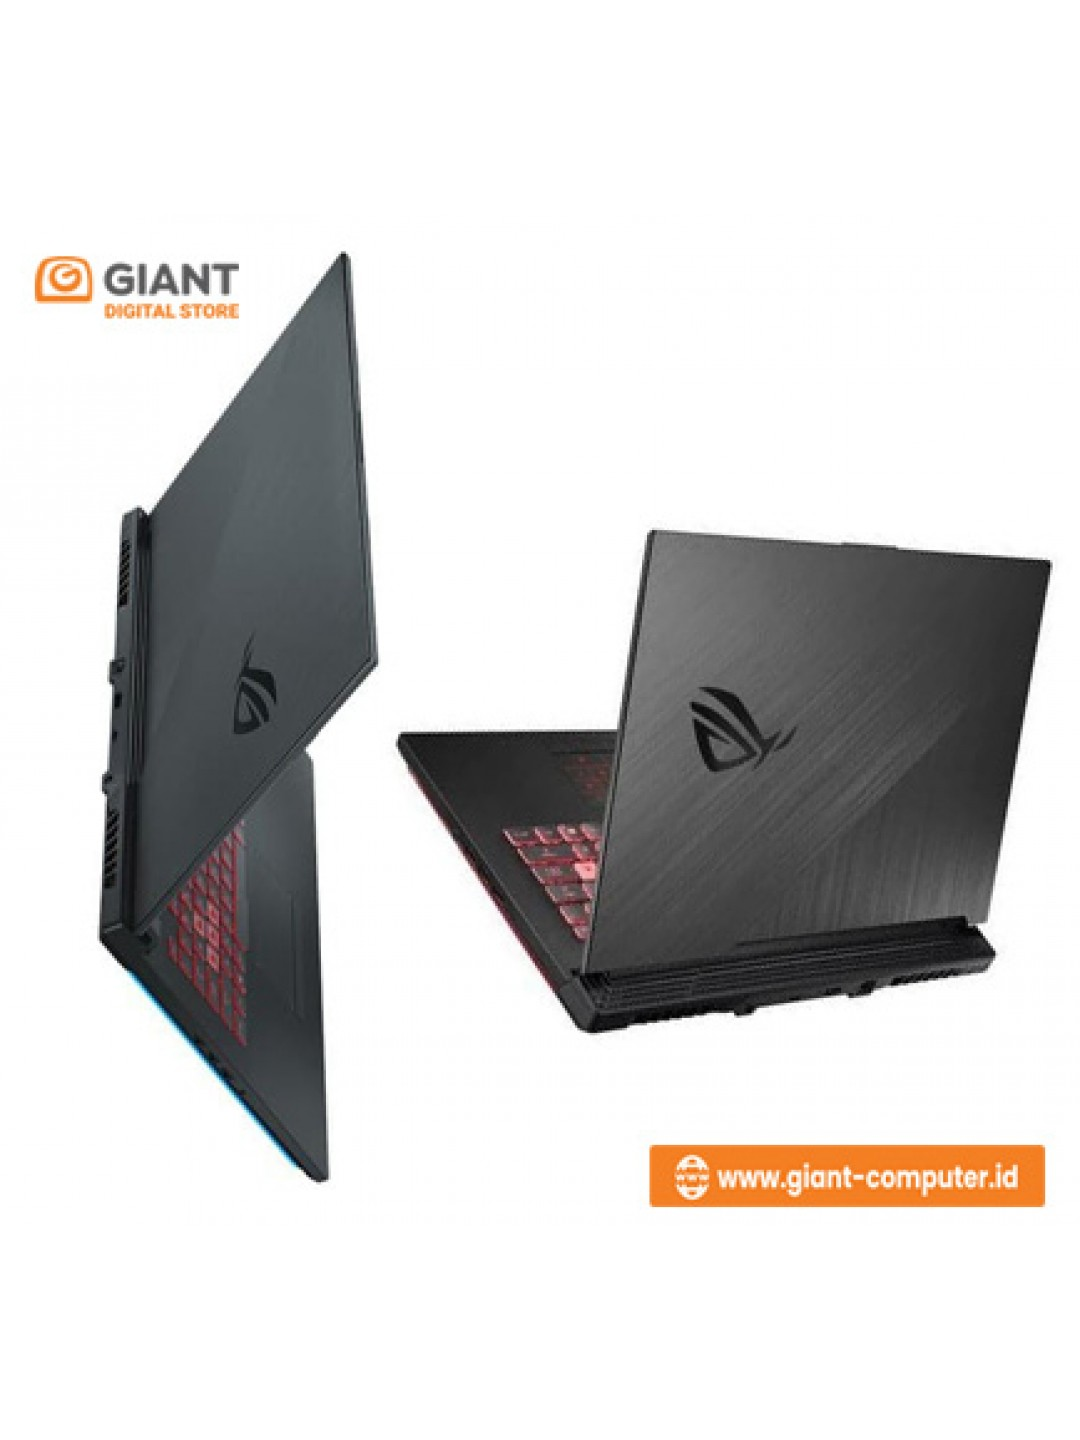 "LAPTOP ASUS ROG STRIX III G531GD-I505G4T (INTEL CORE I5-9300H / 8GB DDR4 / SSD 512GB / 15.6"" / NVIDIA GTX1050 4GB / WIN 10 HOME) METAL BLACK"